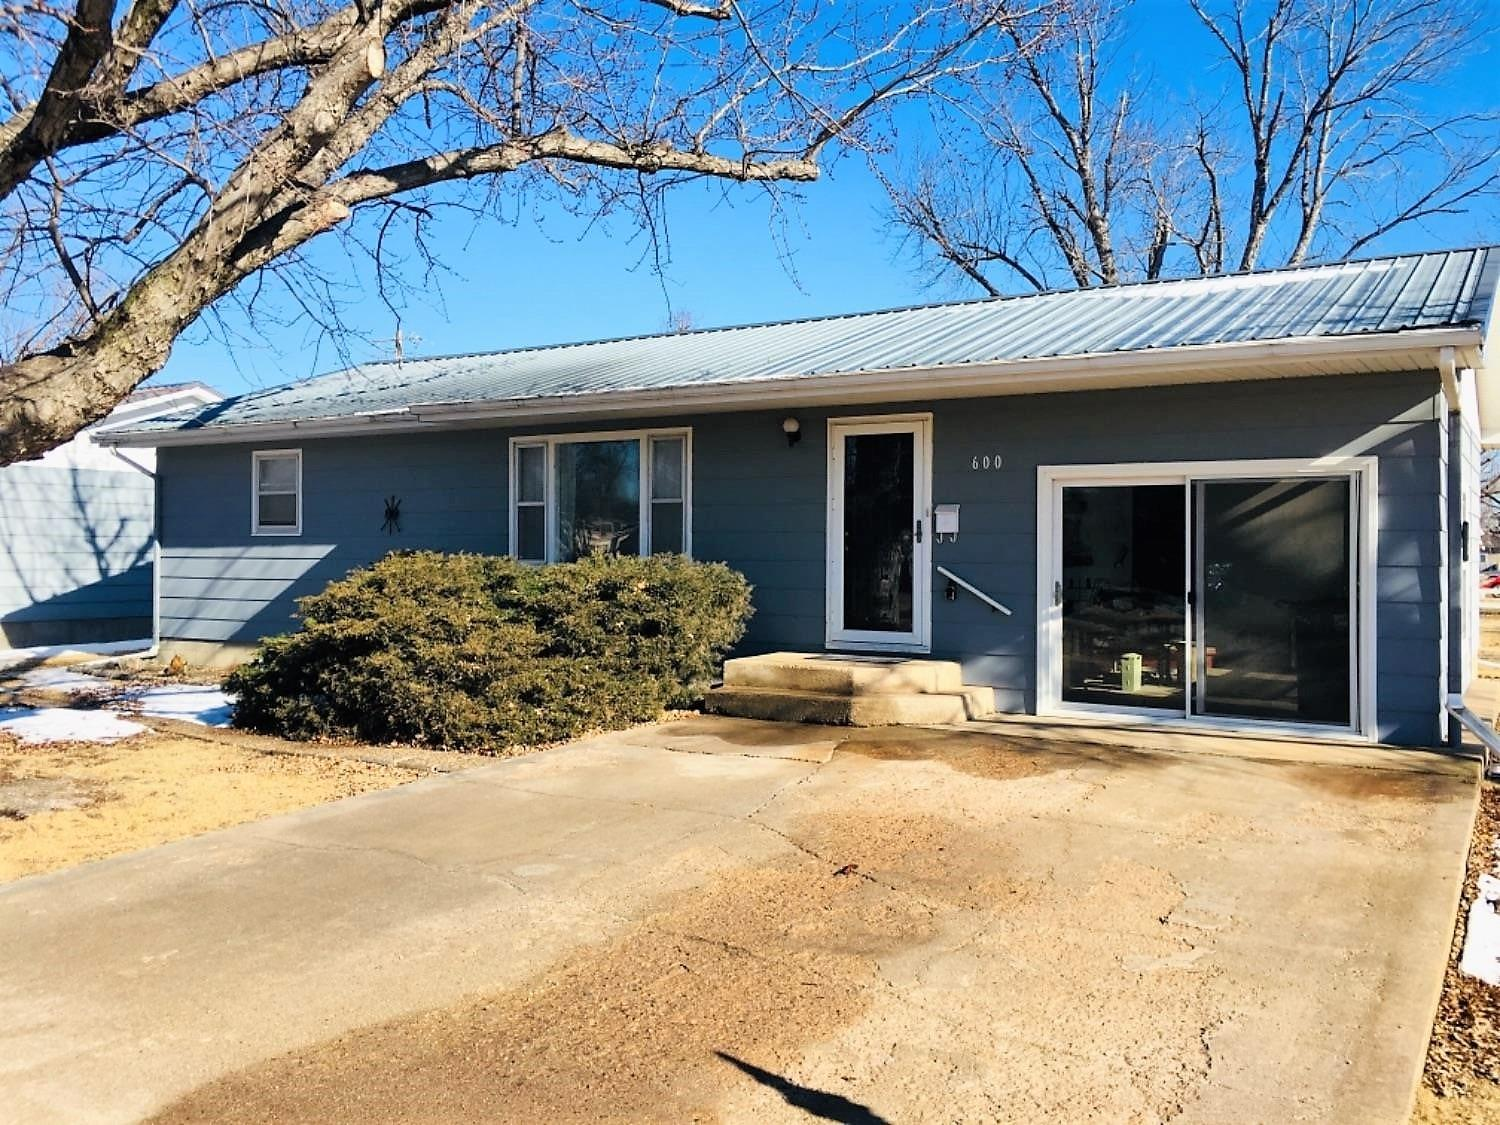 A Breath of Fresh Air - is what you will receive living in this ranch style Architectural homeage to mid-century modern design. Single story compound with utmost space, inside and out, set on a magical flat lot spanning nearly half an acre in the heart of Pawnee Rock streets.